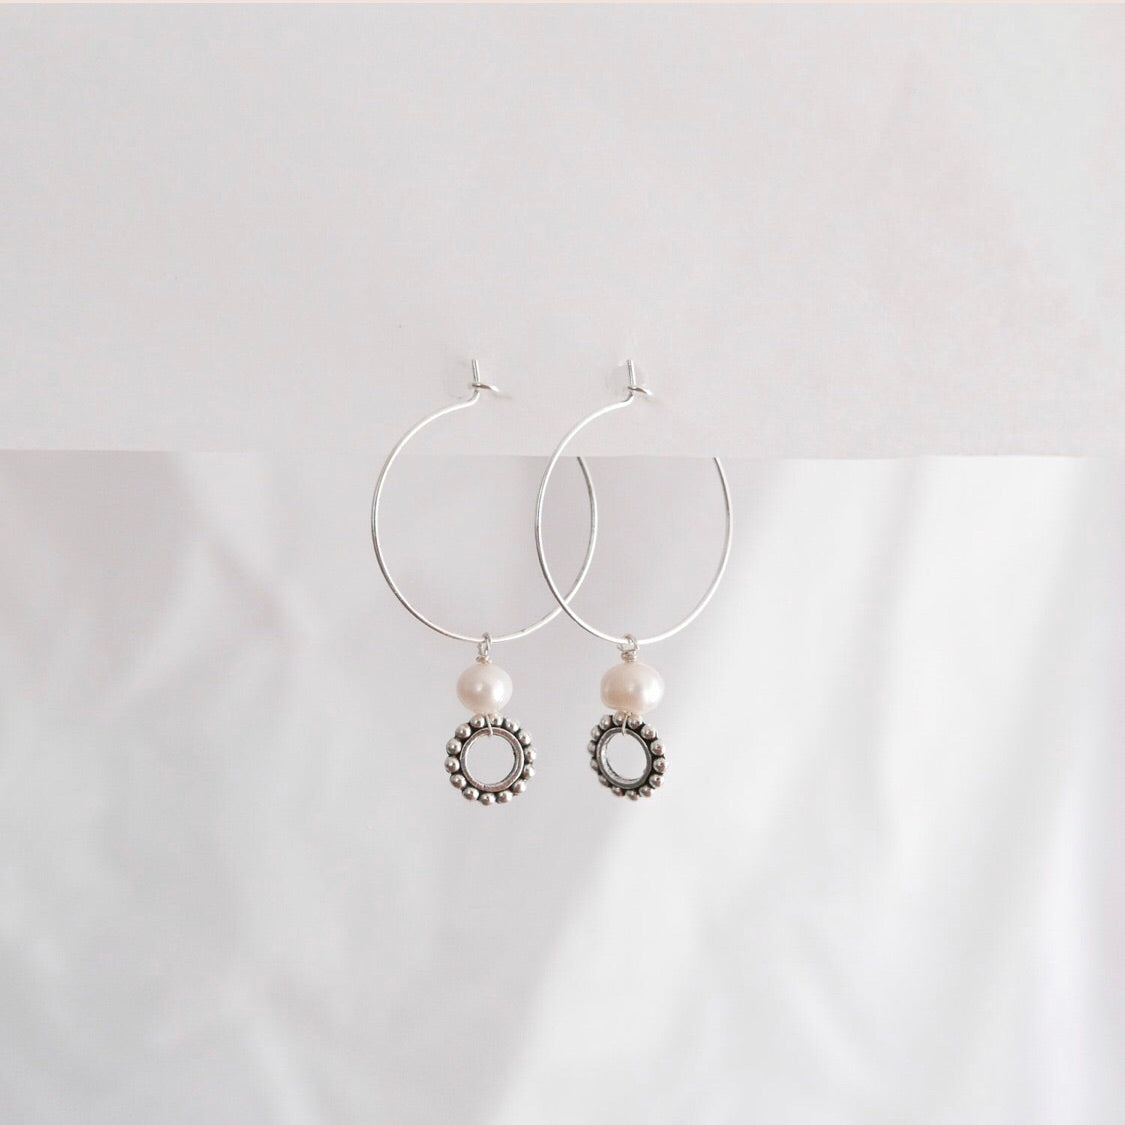 Goodheart  hoops - River + silver plate